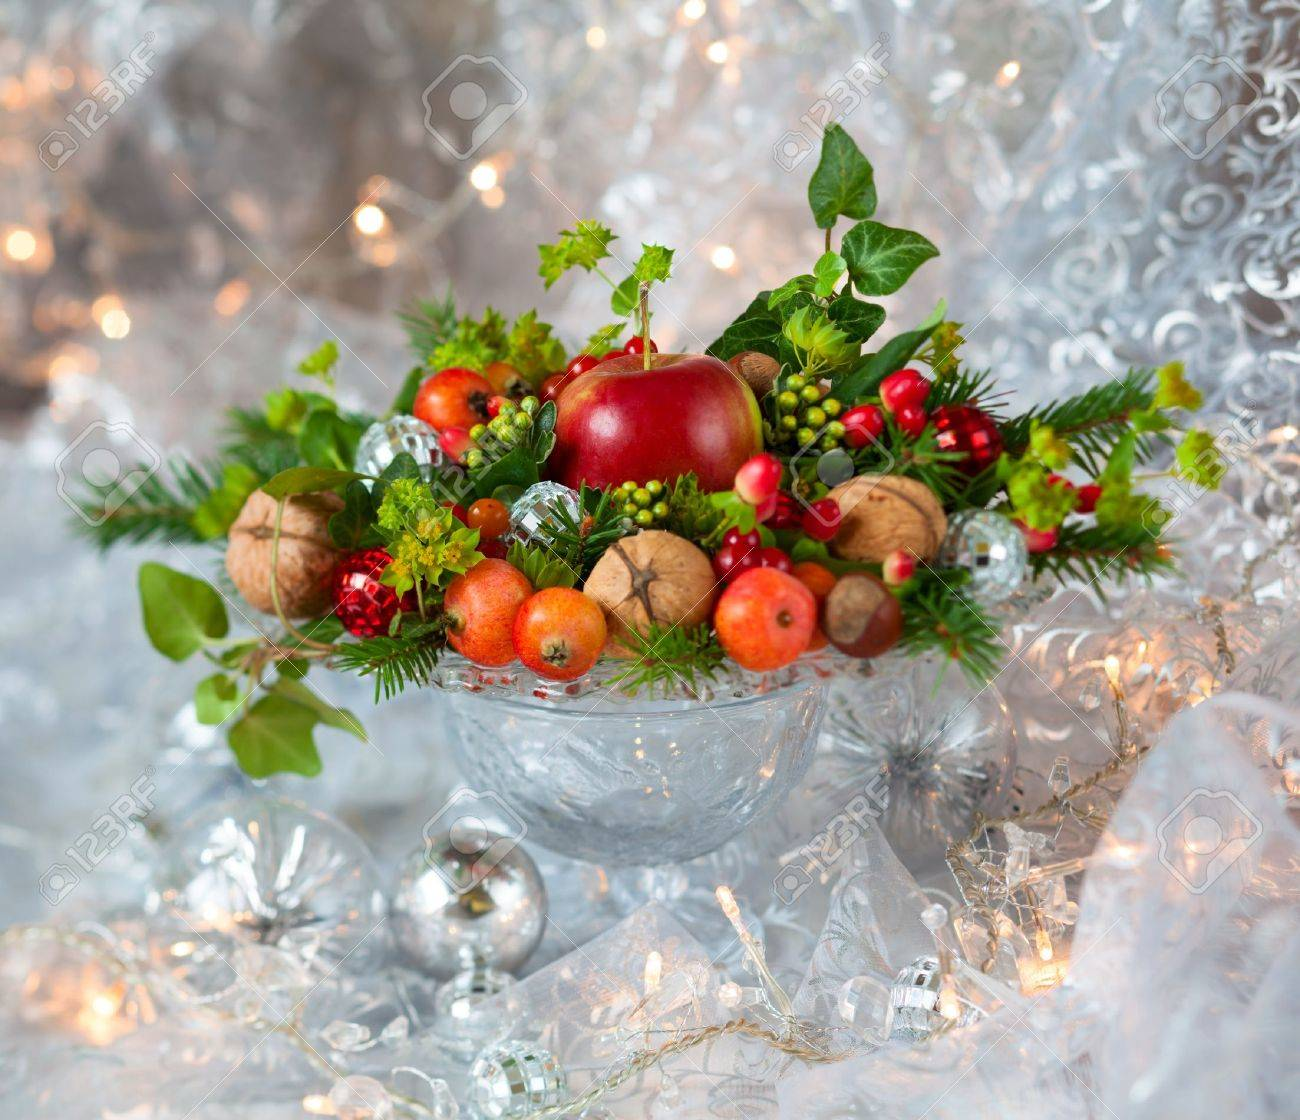 Christmas table decoration with fruit, nuts, fir branches Stock Photo - 15572550